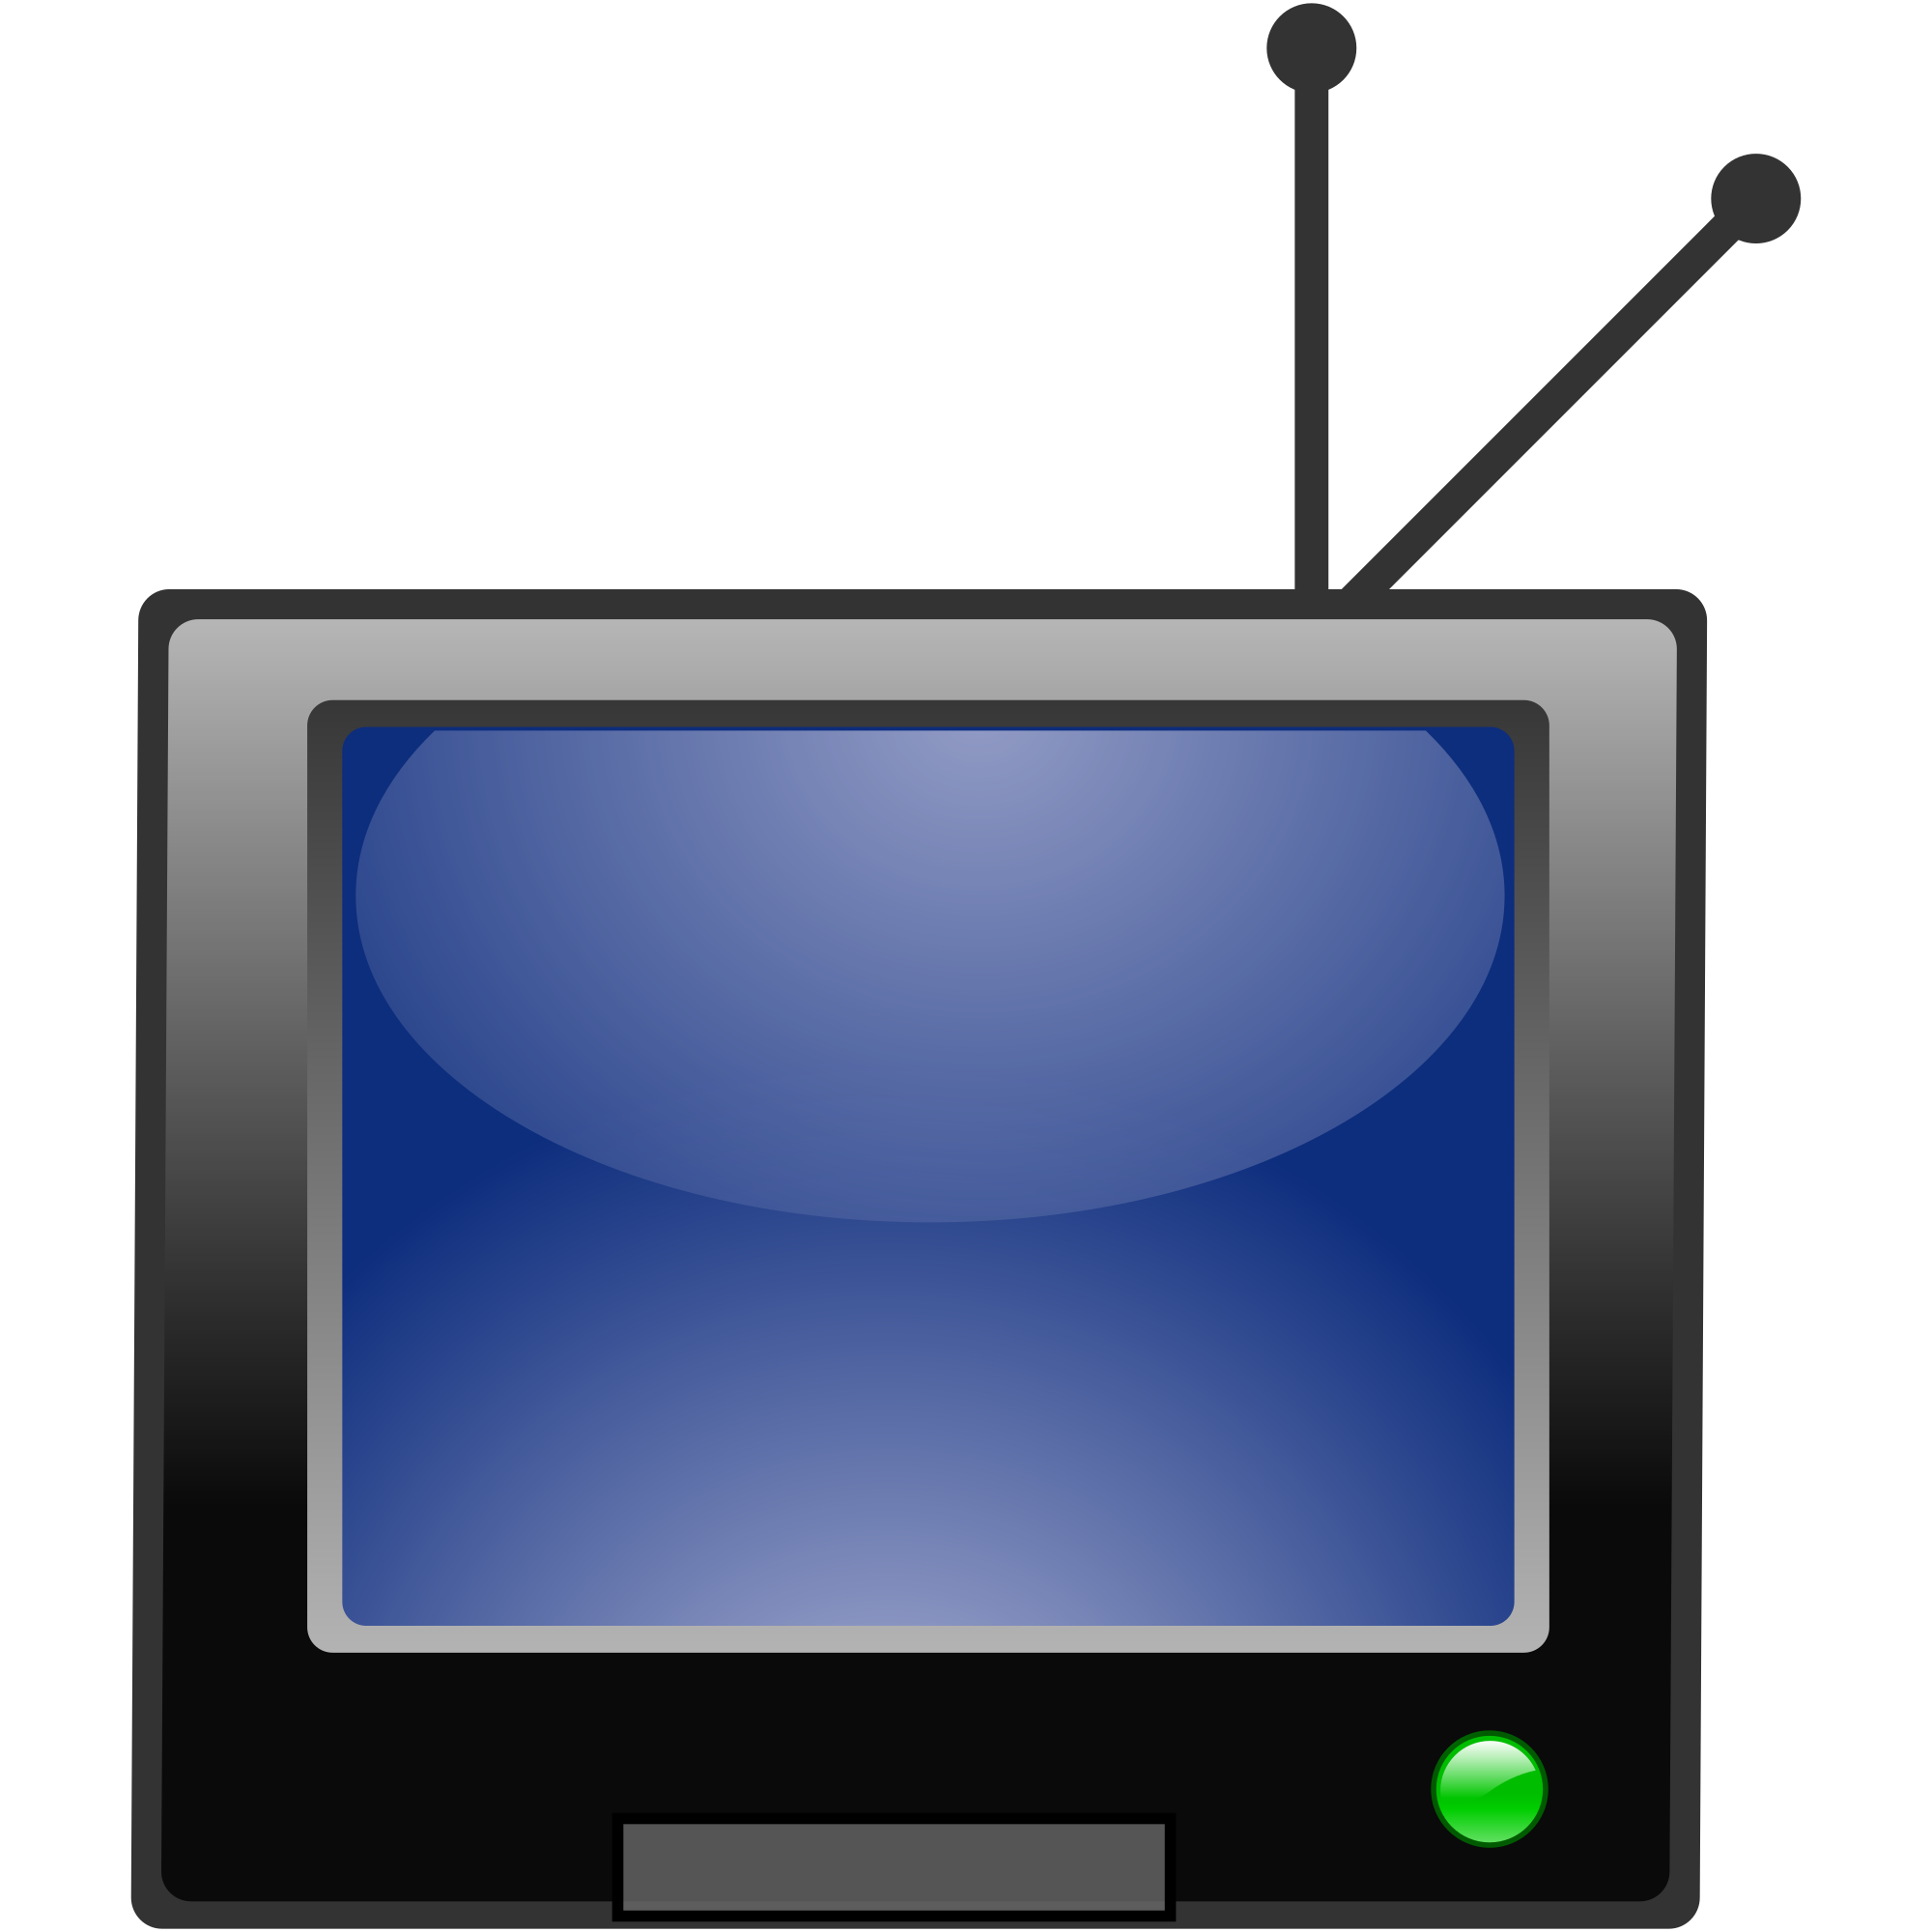 Television clipart modern. Images free download best